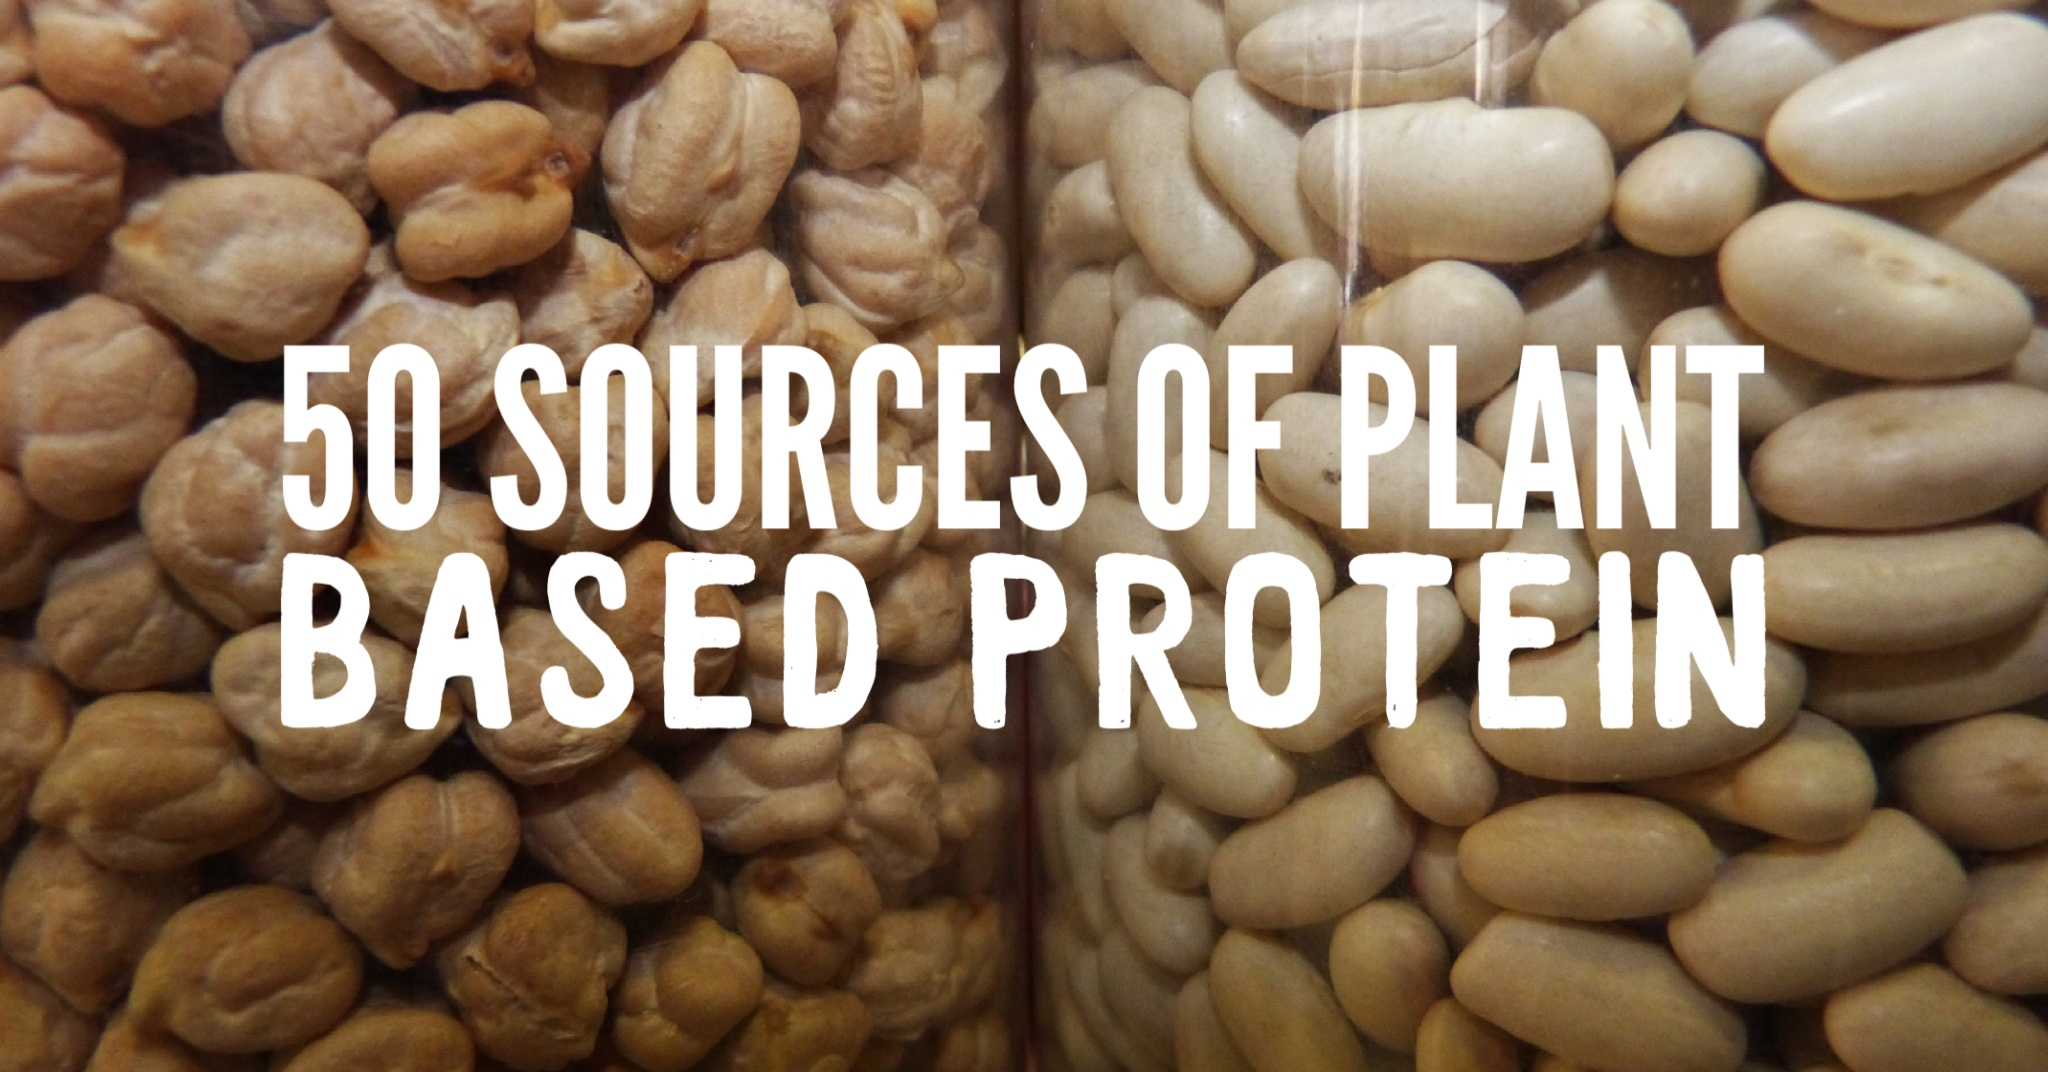 50 Sources of Plant Based Protein Header